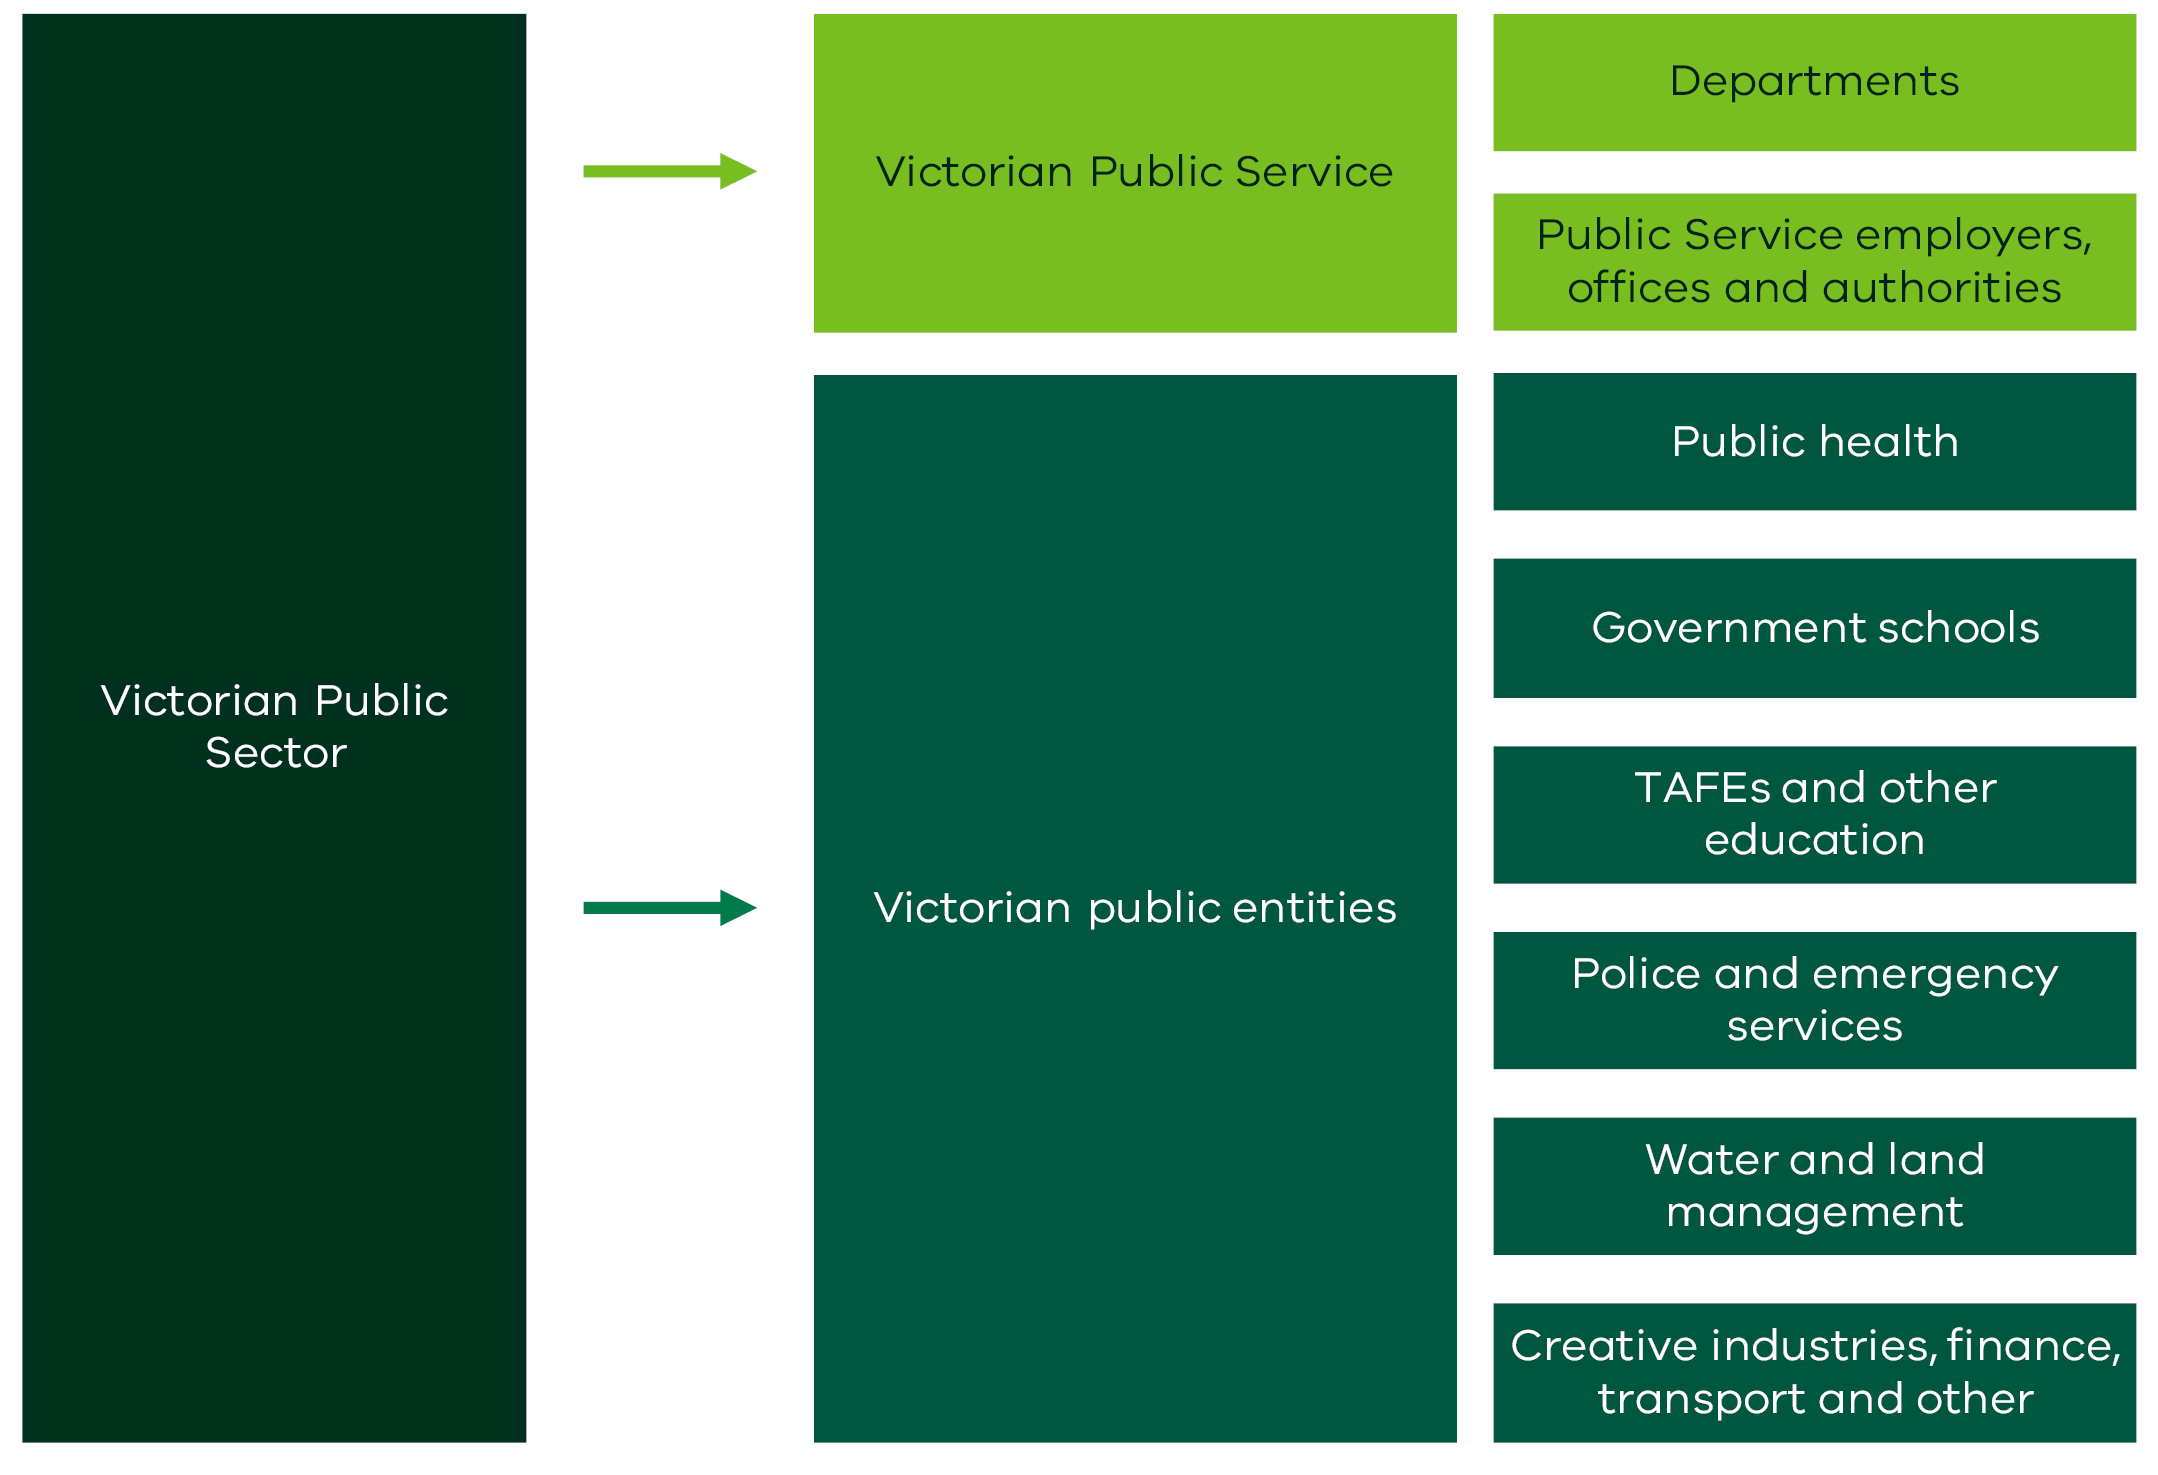 A breakdown of the public sector into its parts of the Victorian Public Service and public entities